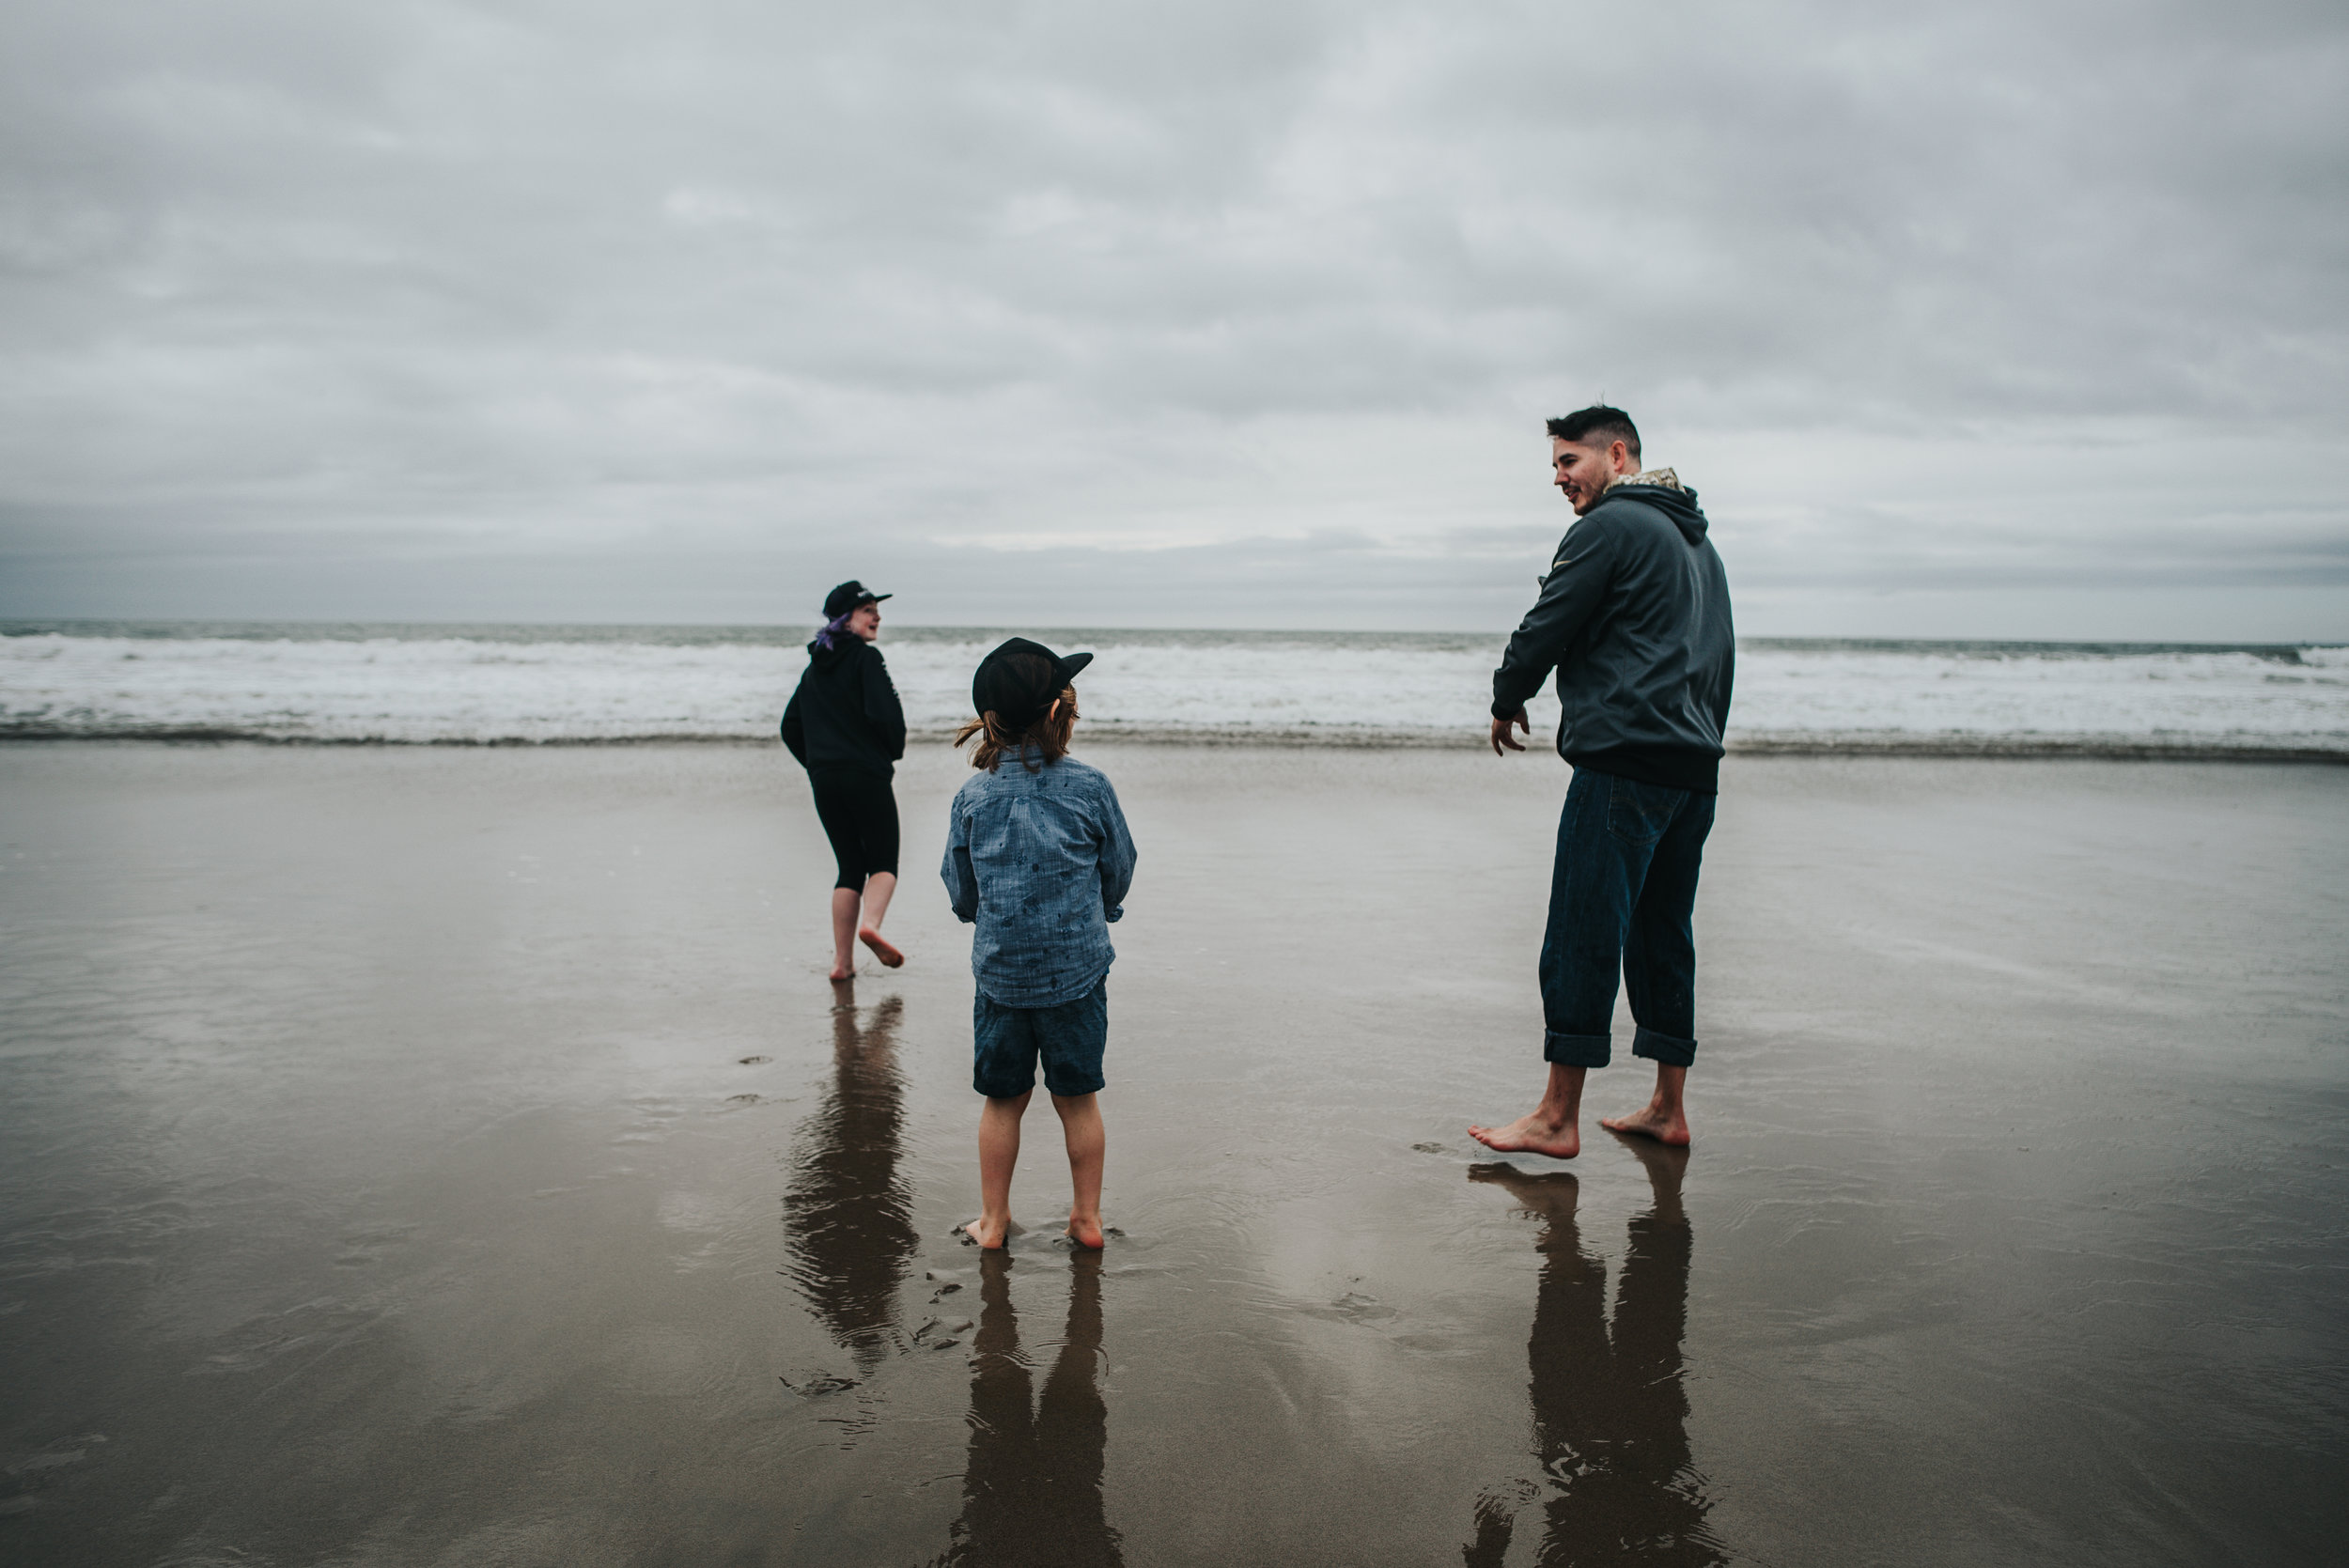 Family explores the California coast at Venice Beach near the Santa Monica Pier.